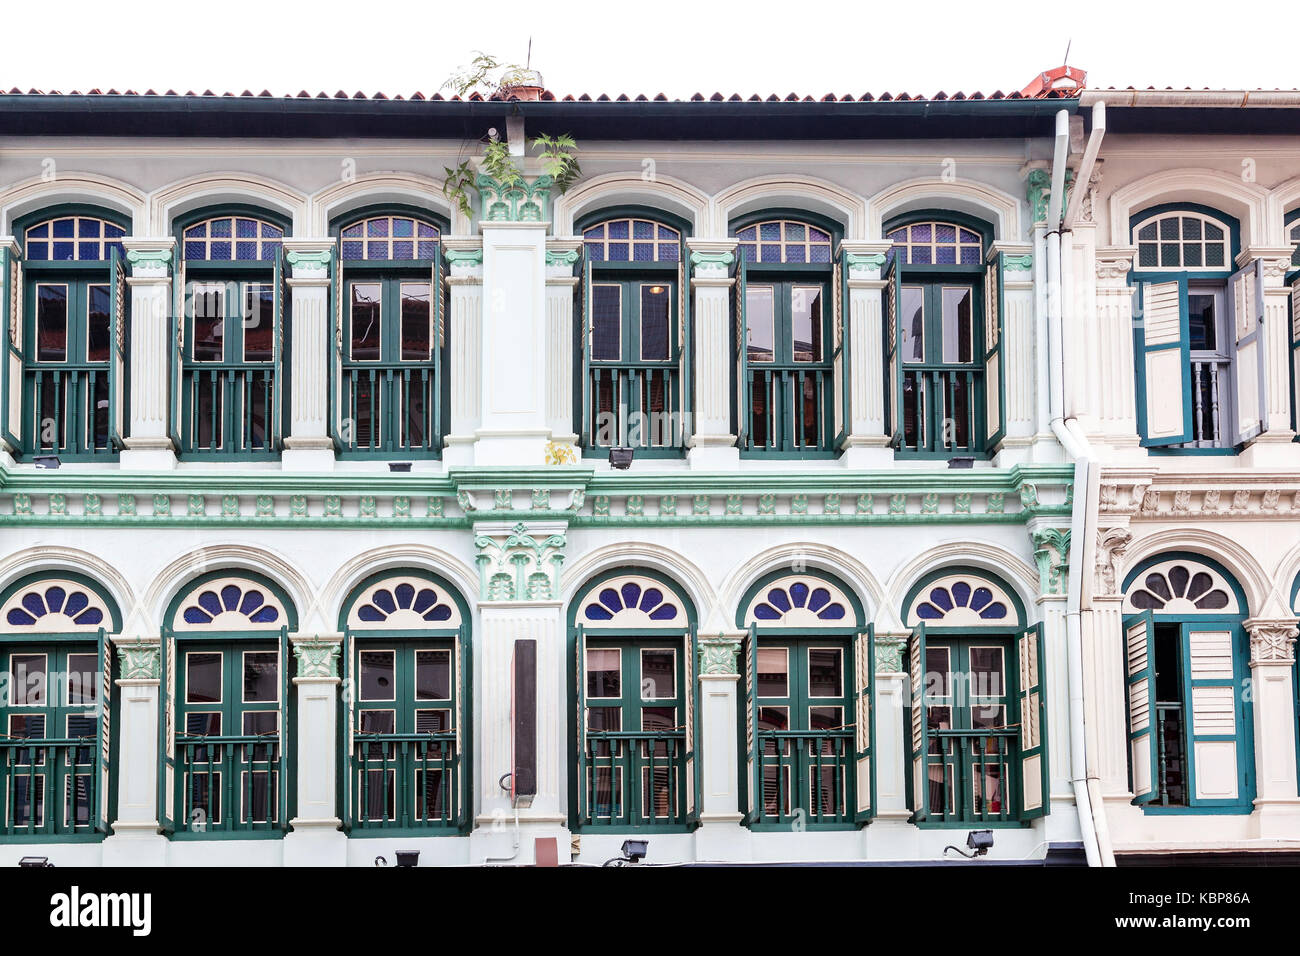 Rows of colonial style shophouses seen at Tanjong Pagar near Chinatown in Singapore. These charming narrow units - Stock Image